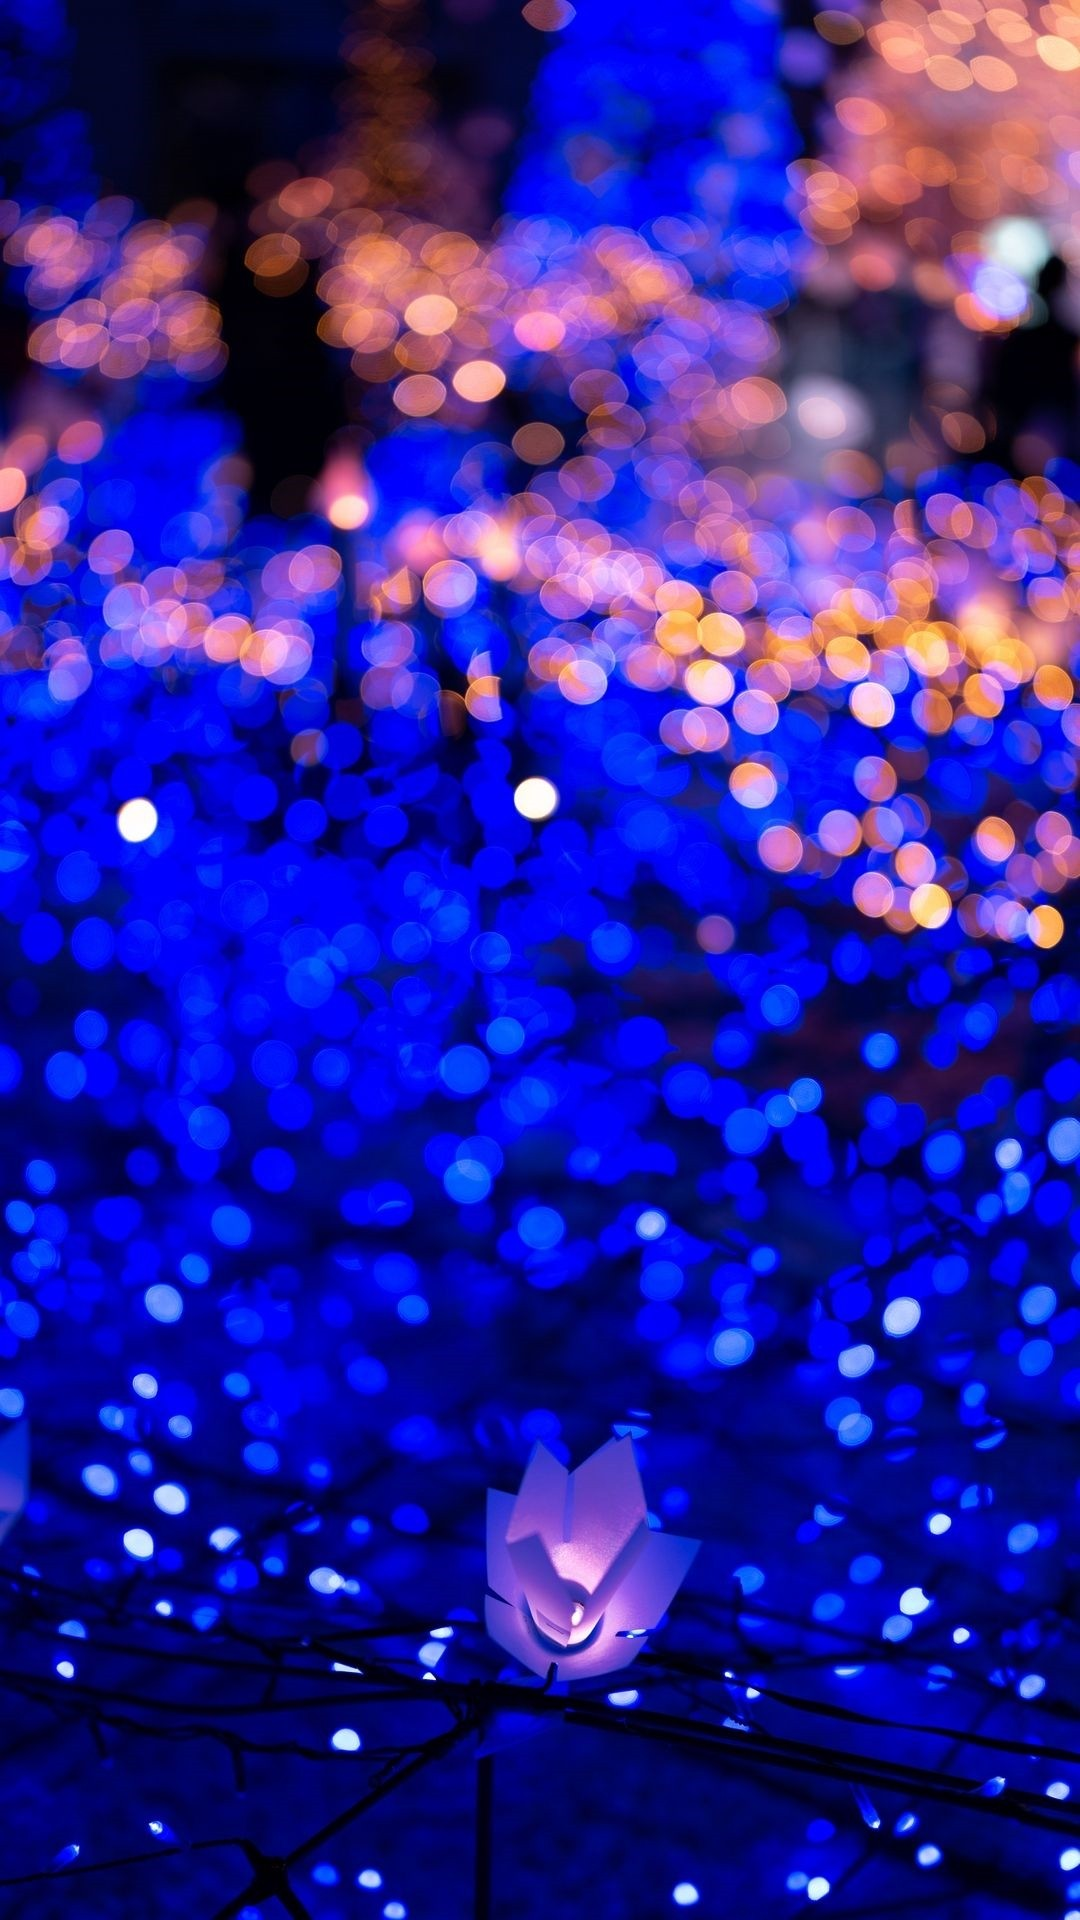 Christmas Lights wallpaper for iPhone